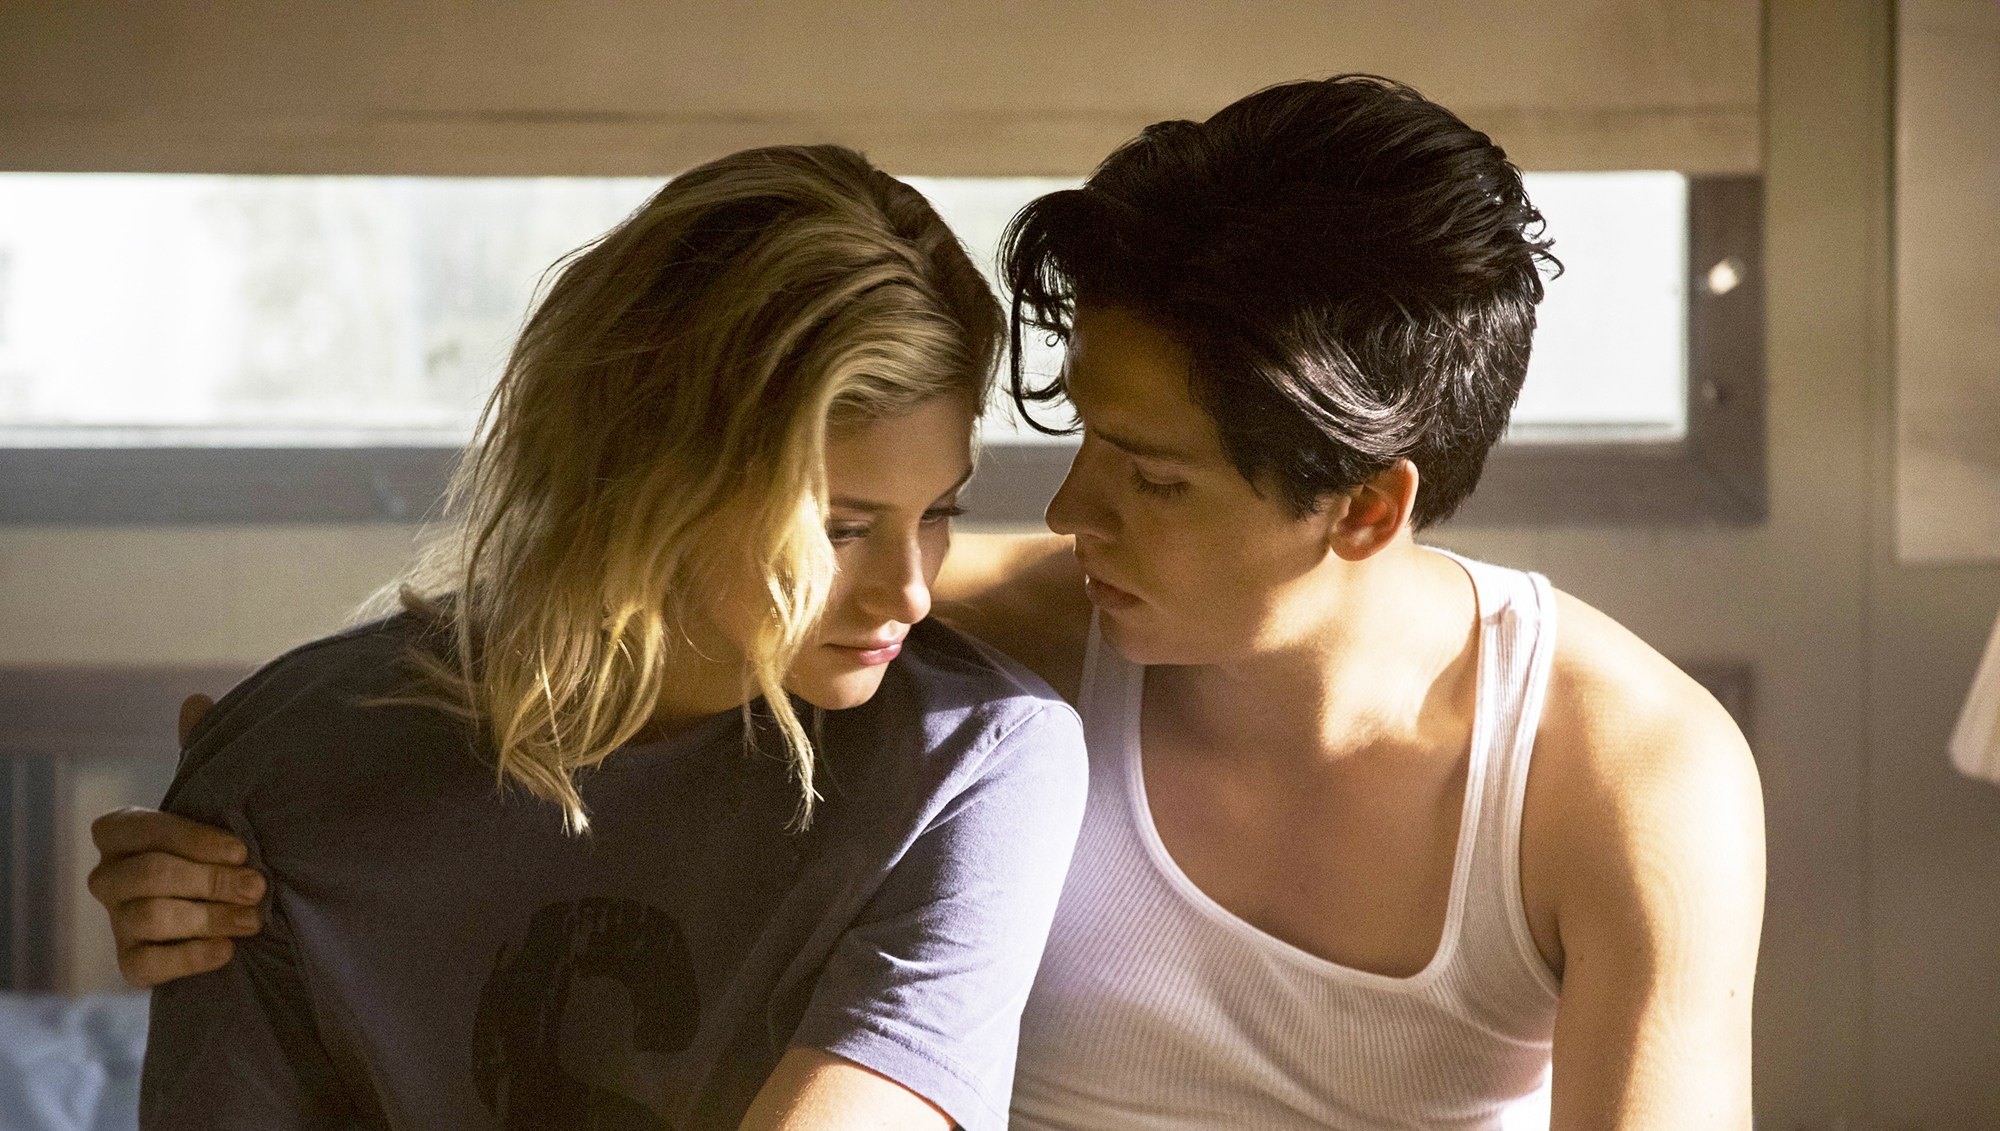 Lili Reinhart as Betty Cooper and Cole Sprouse as Jughead Jones on 'Riverdale'